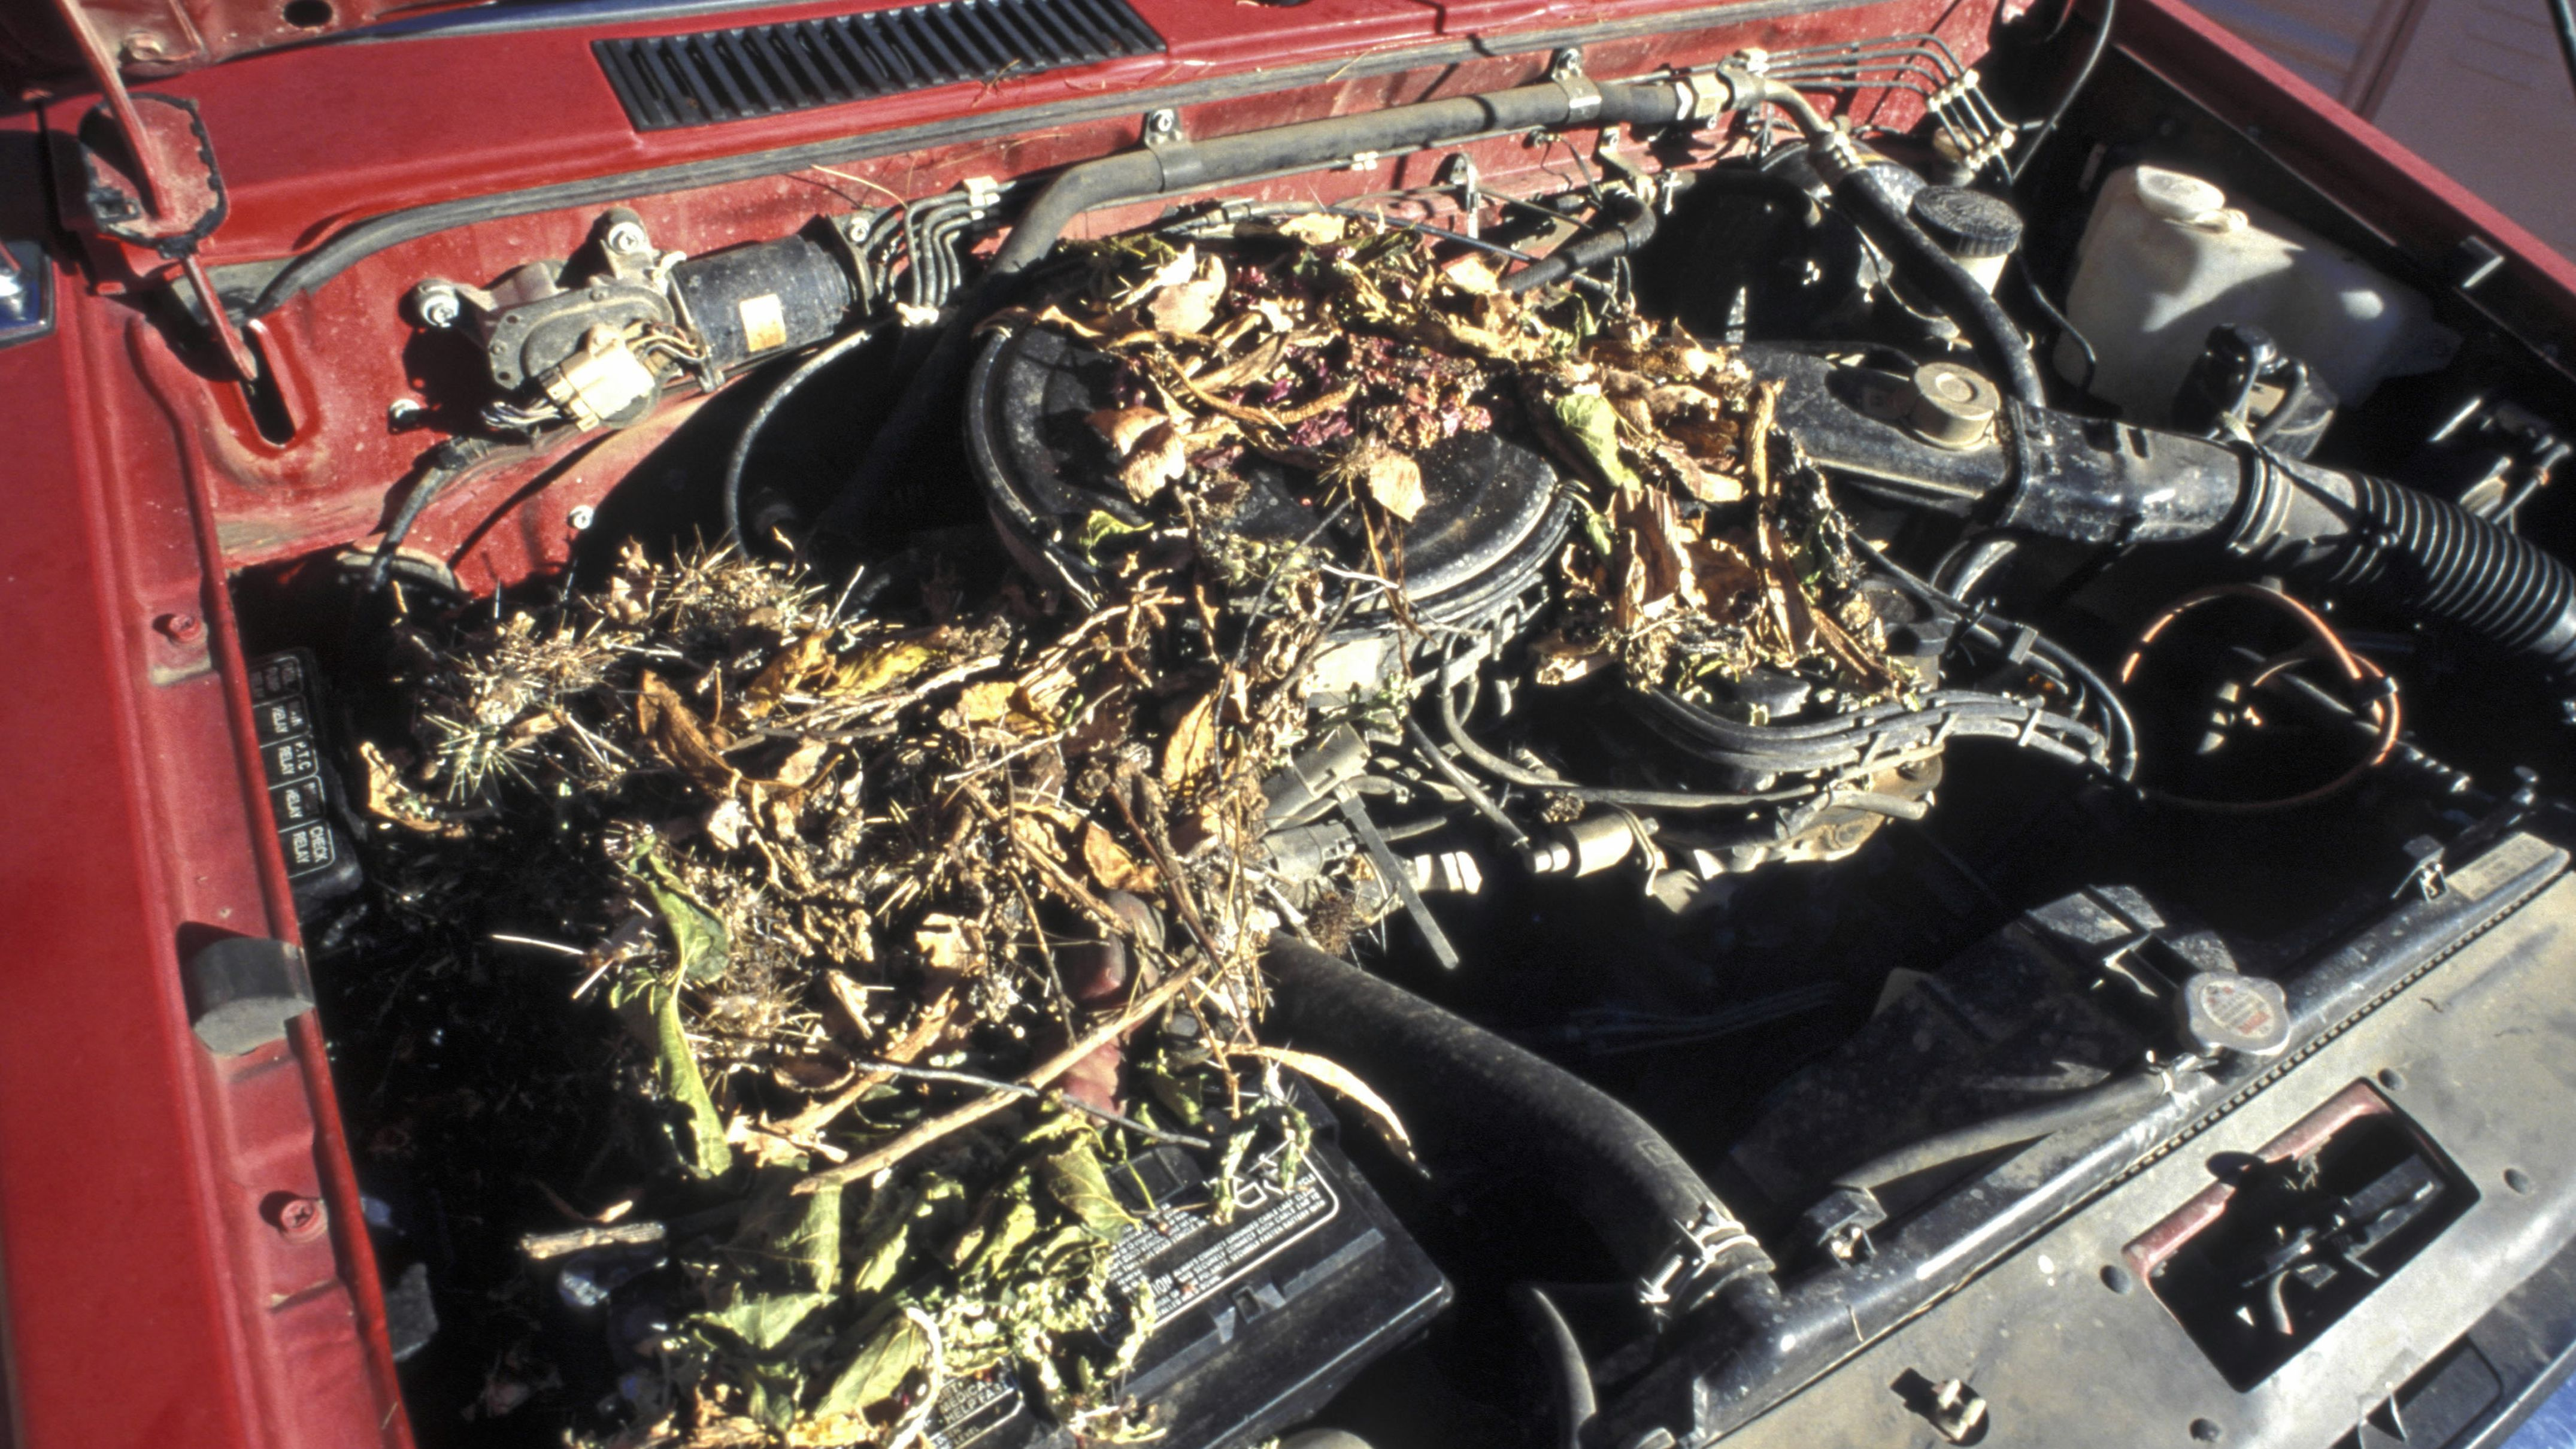 Is Rat Damage Covered By Car Insurance? Auto Wiring Harness Covering on wiring for 1977 ford f-250 engine compartment, house wiring covering, vinyl carpet covering, vinyl window covering,